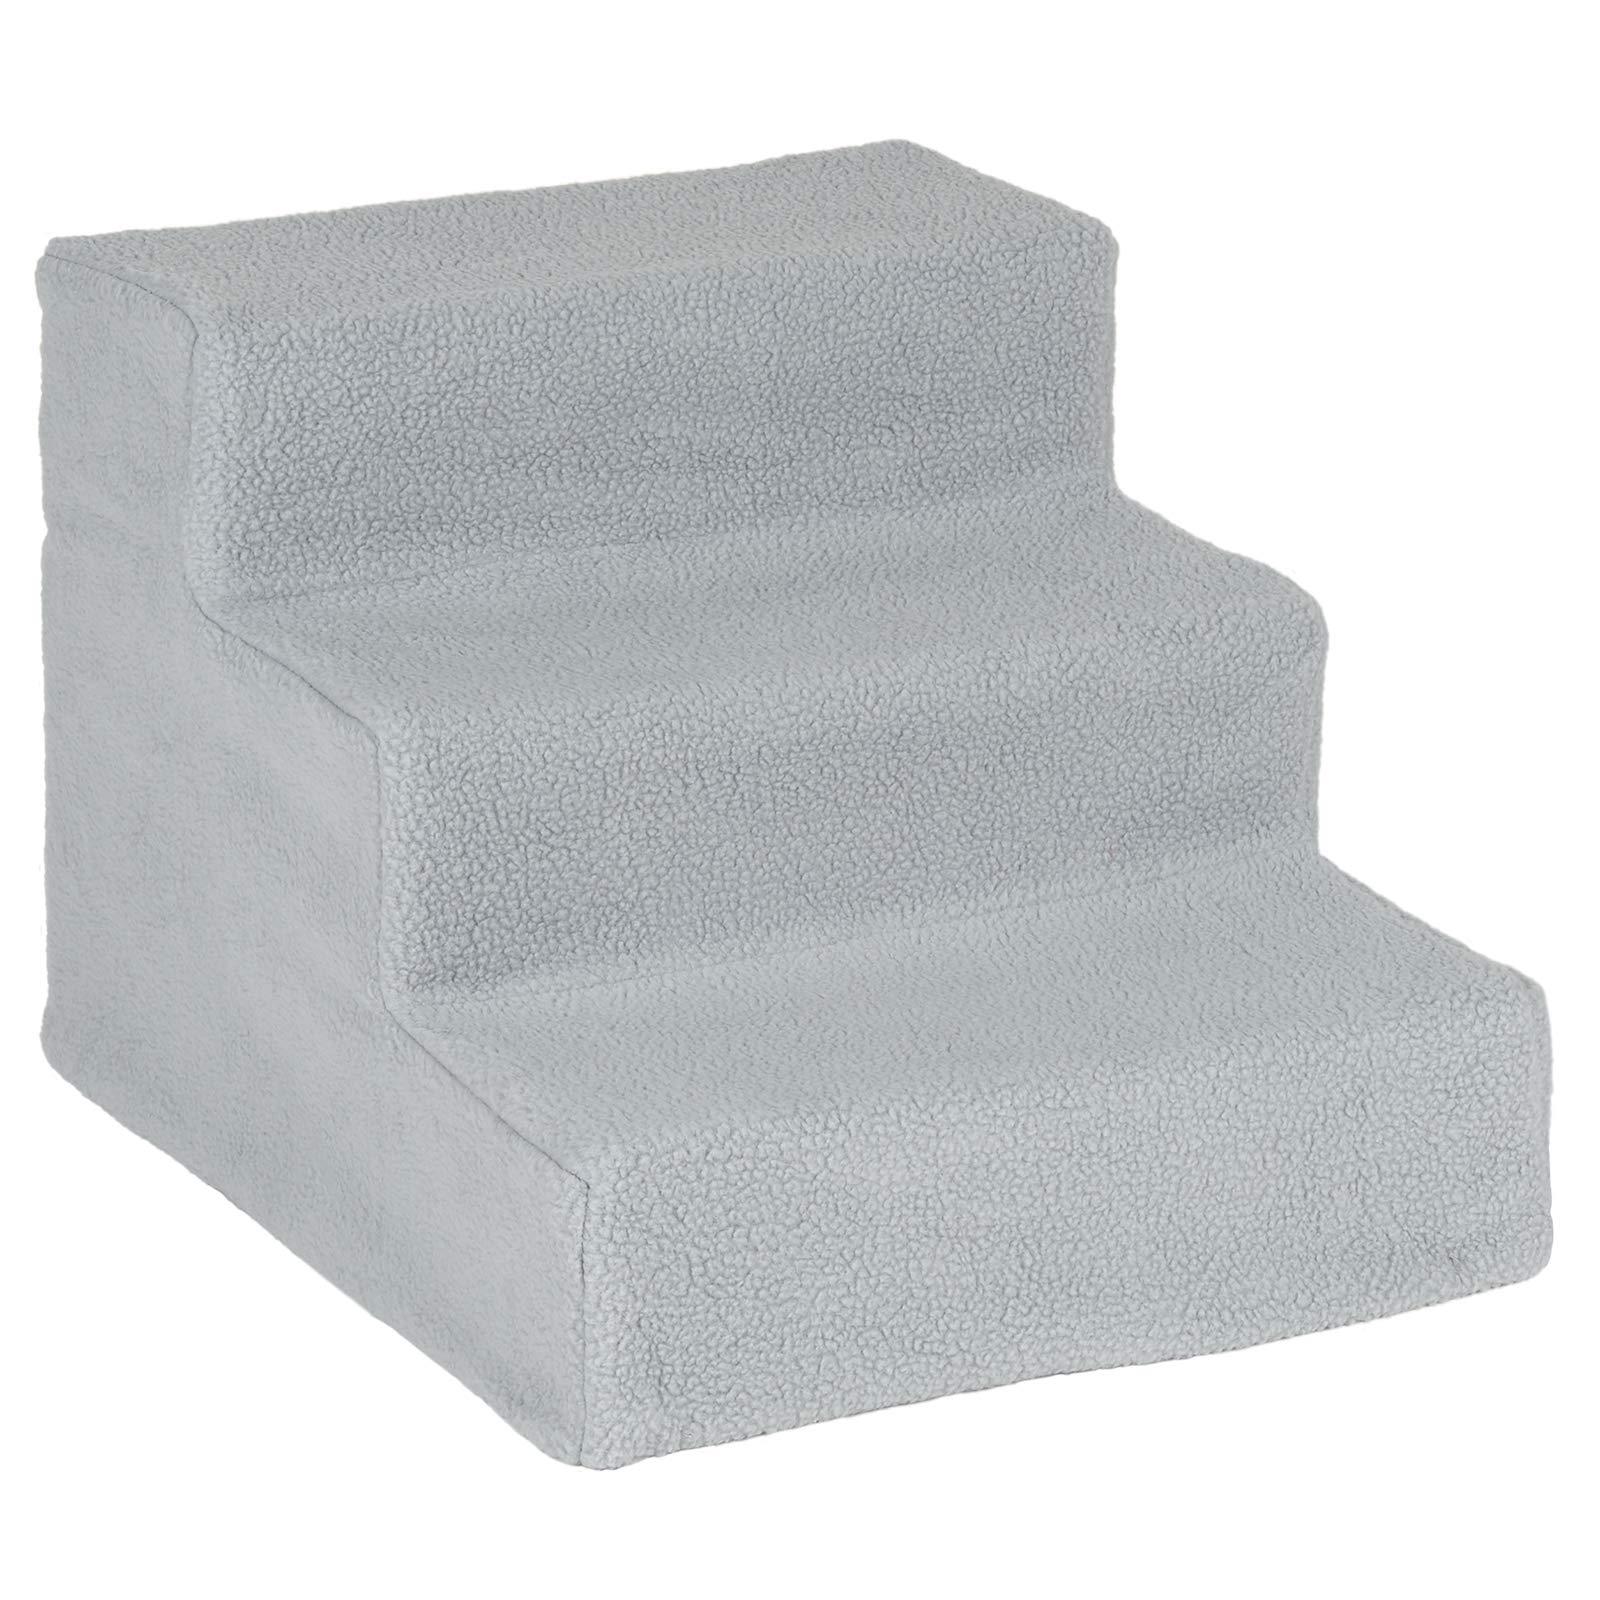 Me & My Easy Climb Fleece Covered Pet Stairs – Grey